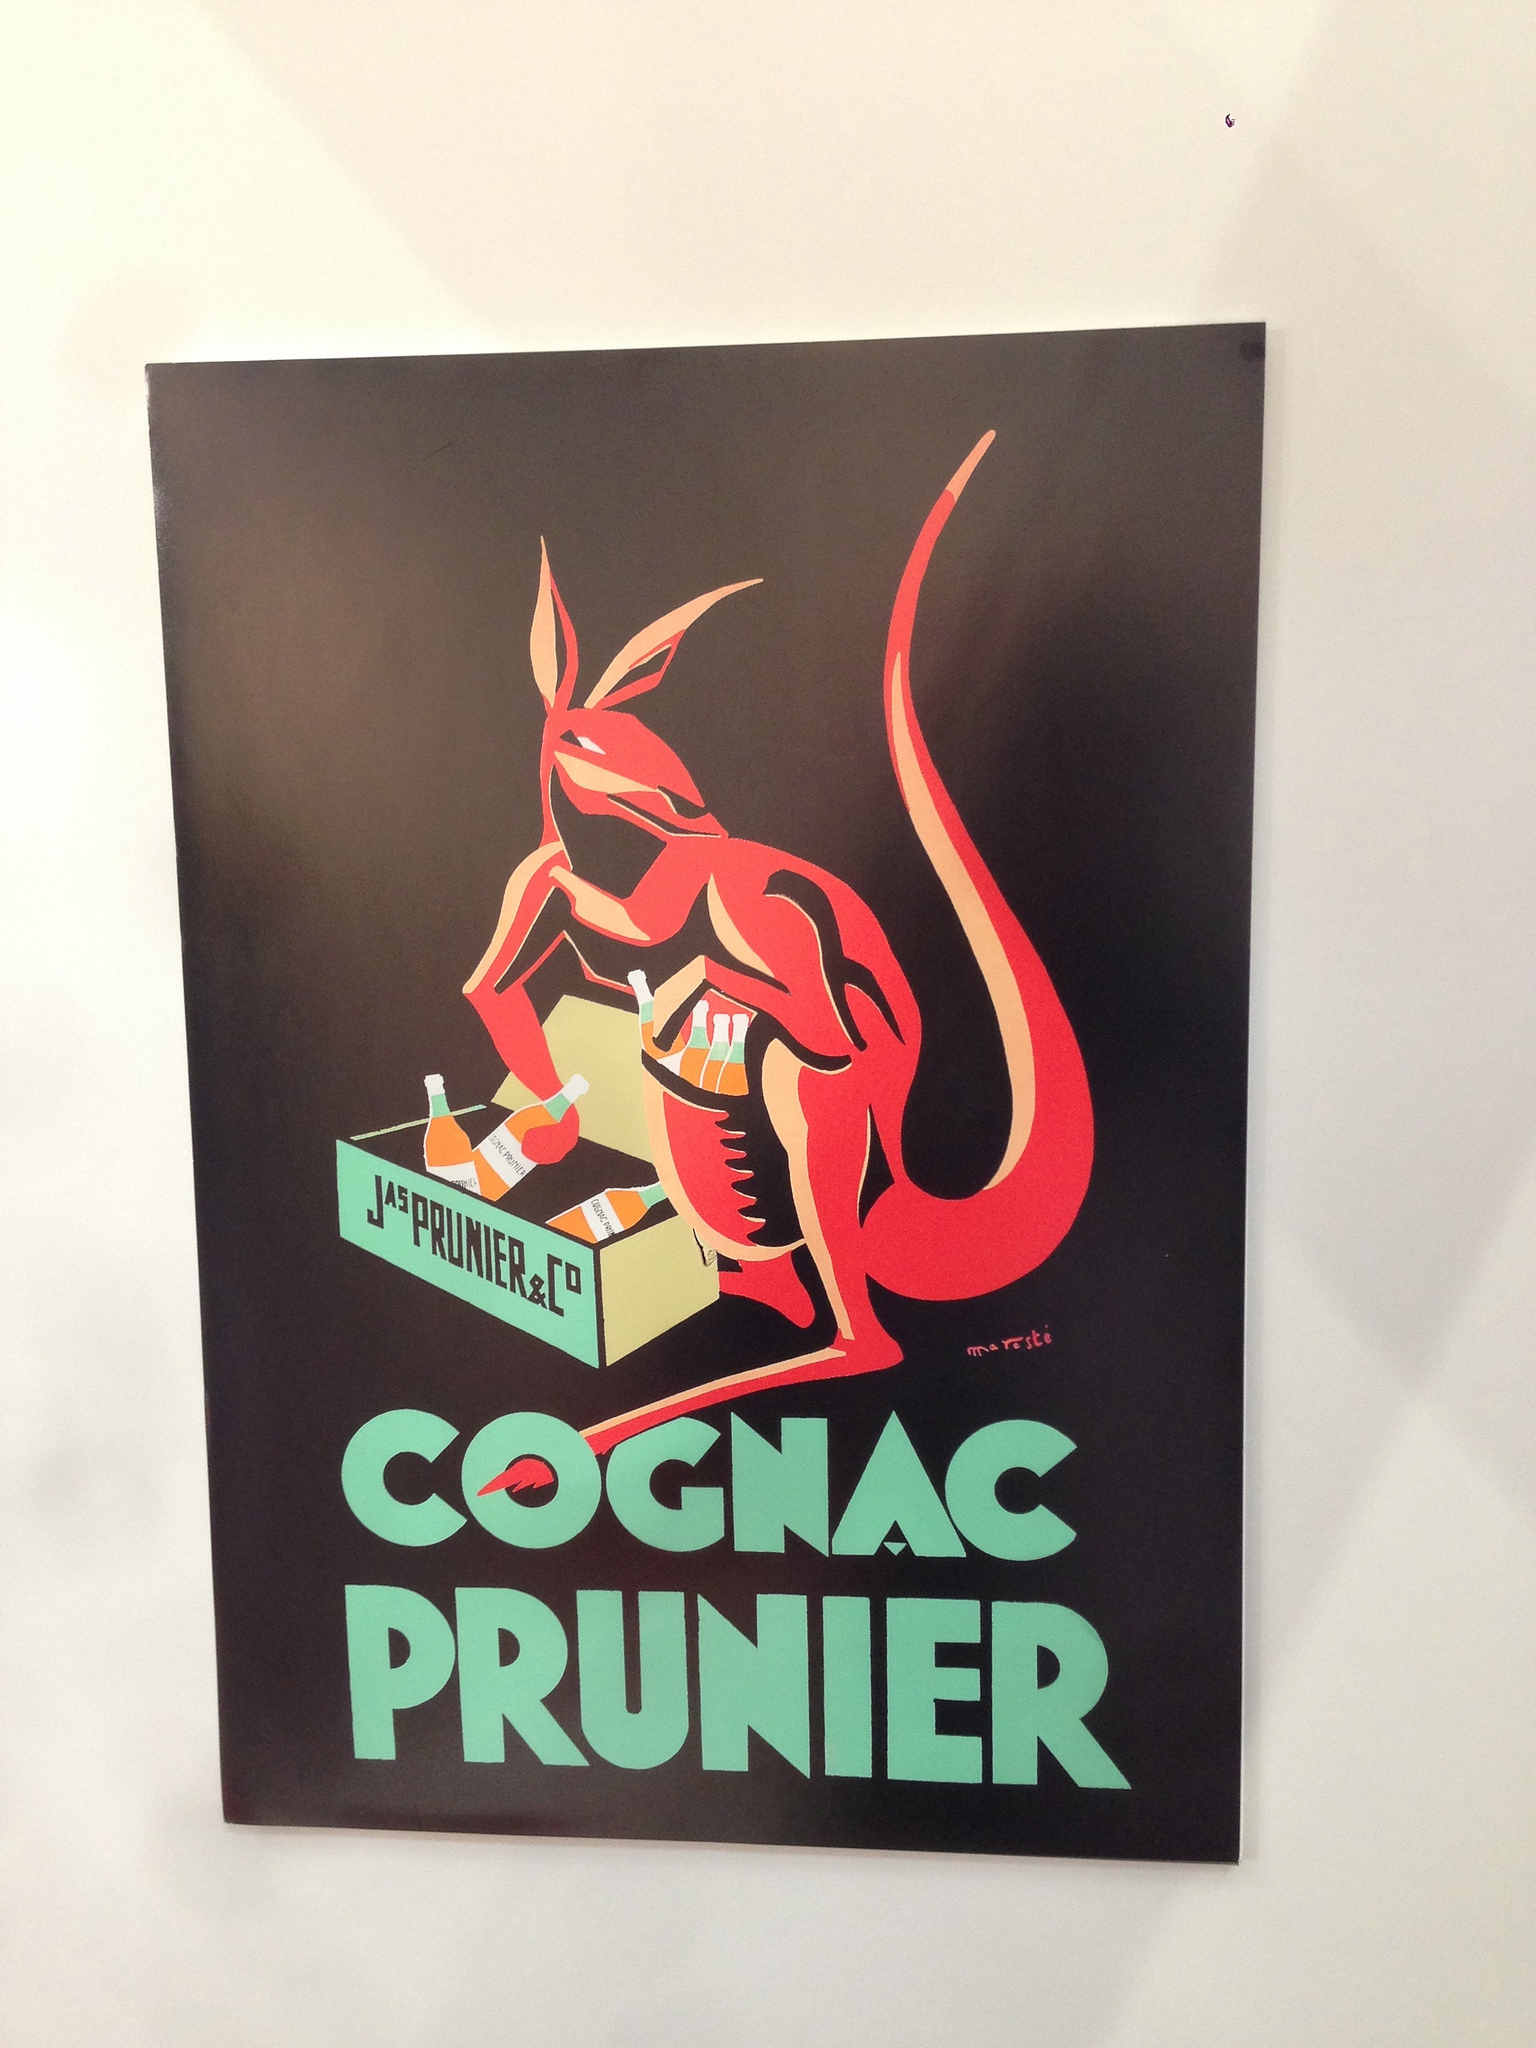 Cool vintage poster of Cognac Prunier